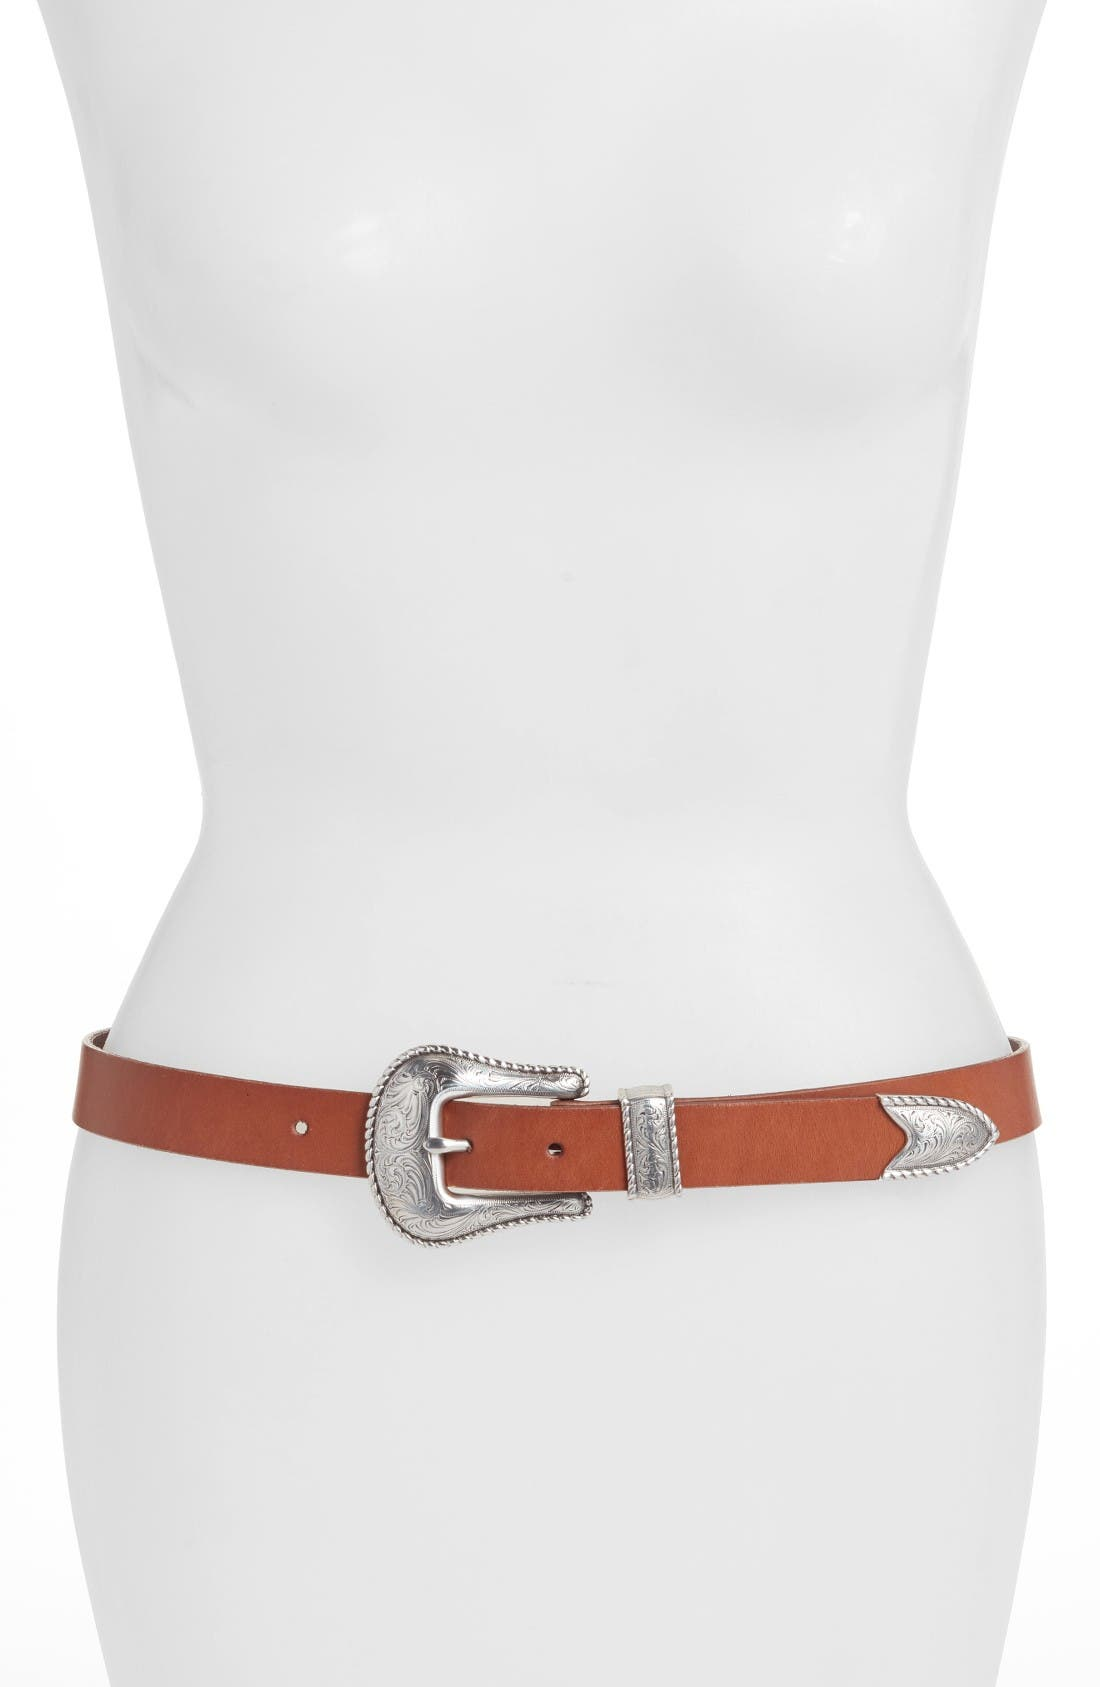 Another Line Skinny Western Belt